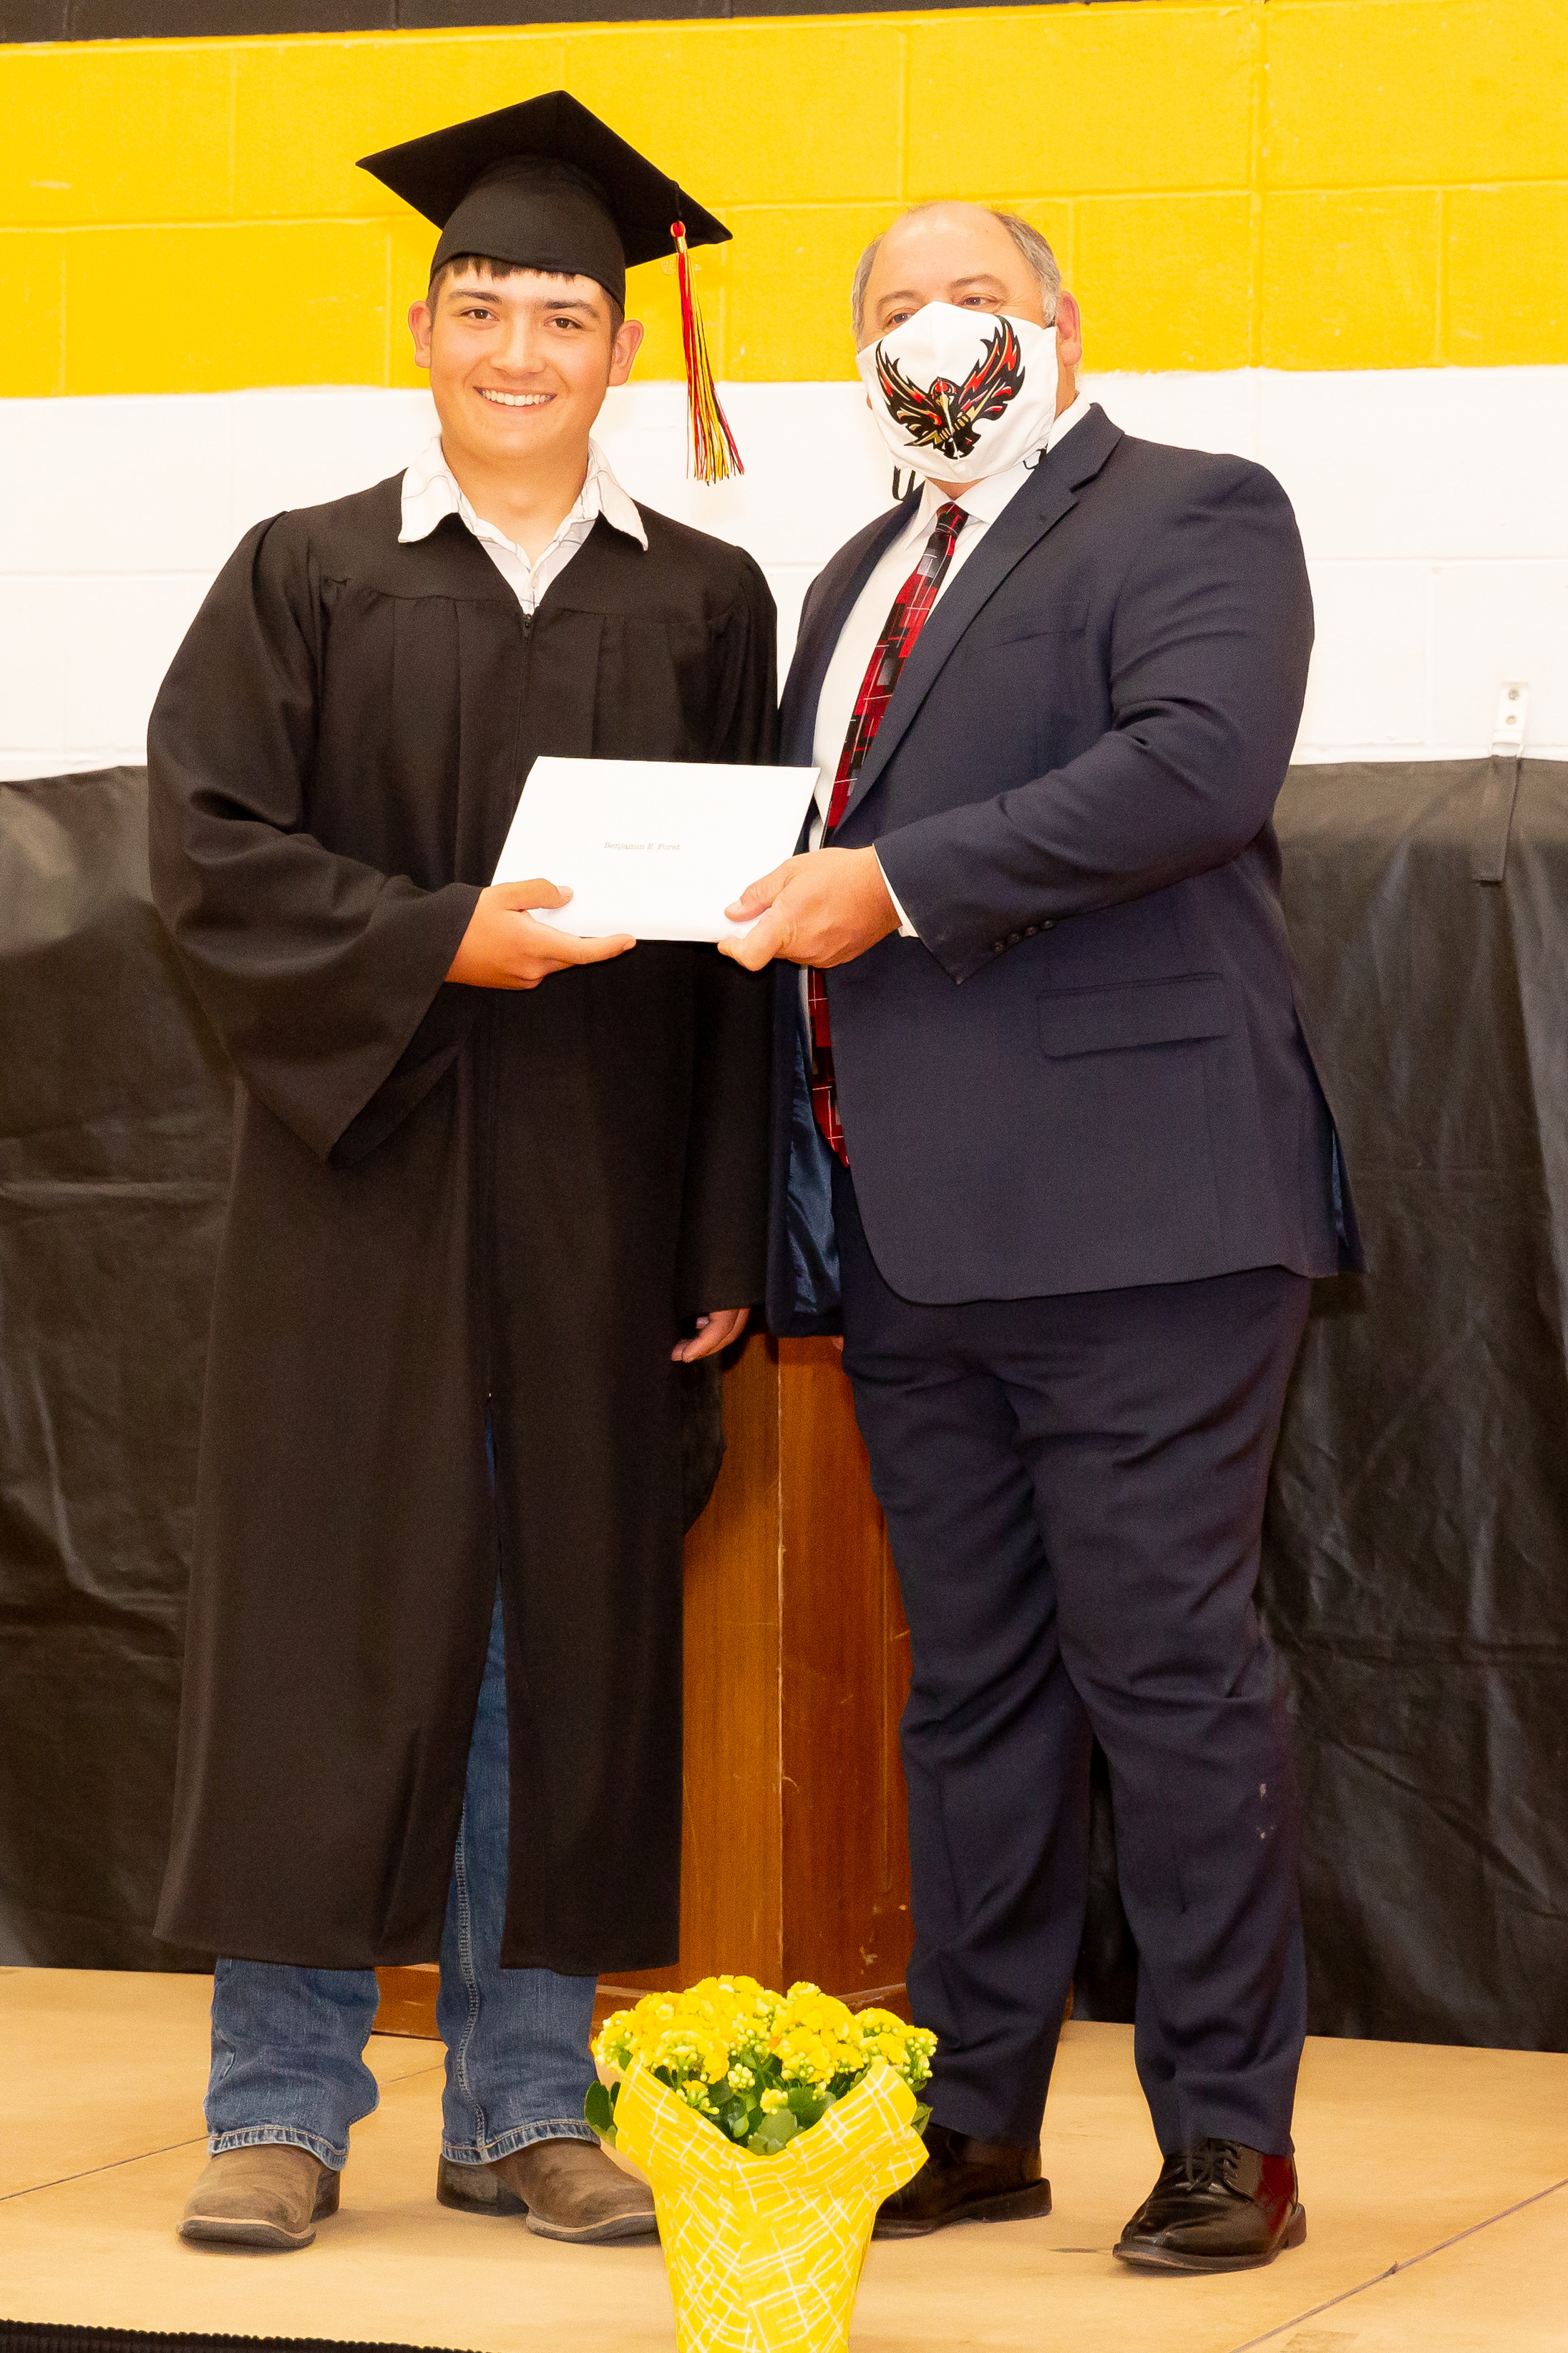 Ben Forst receives his diploma.